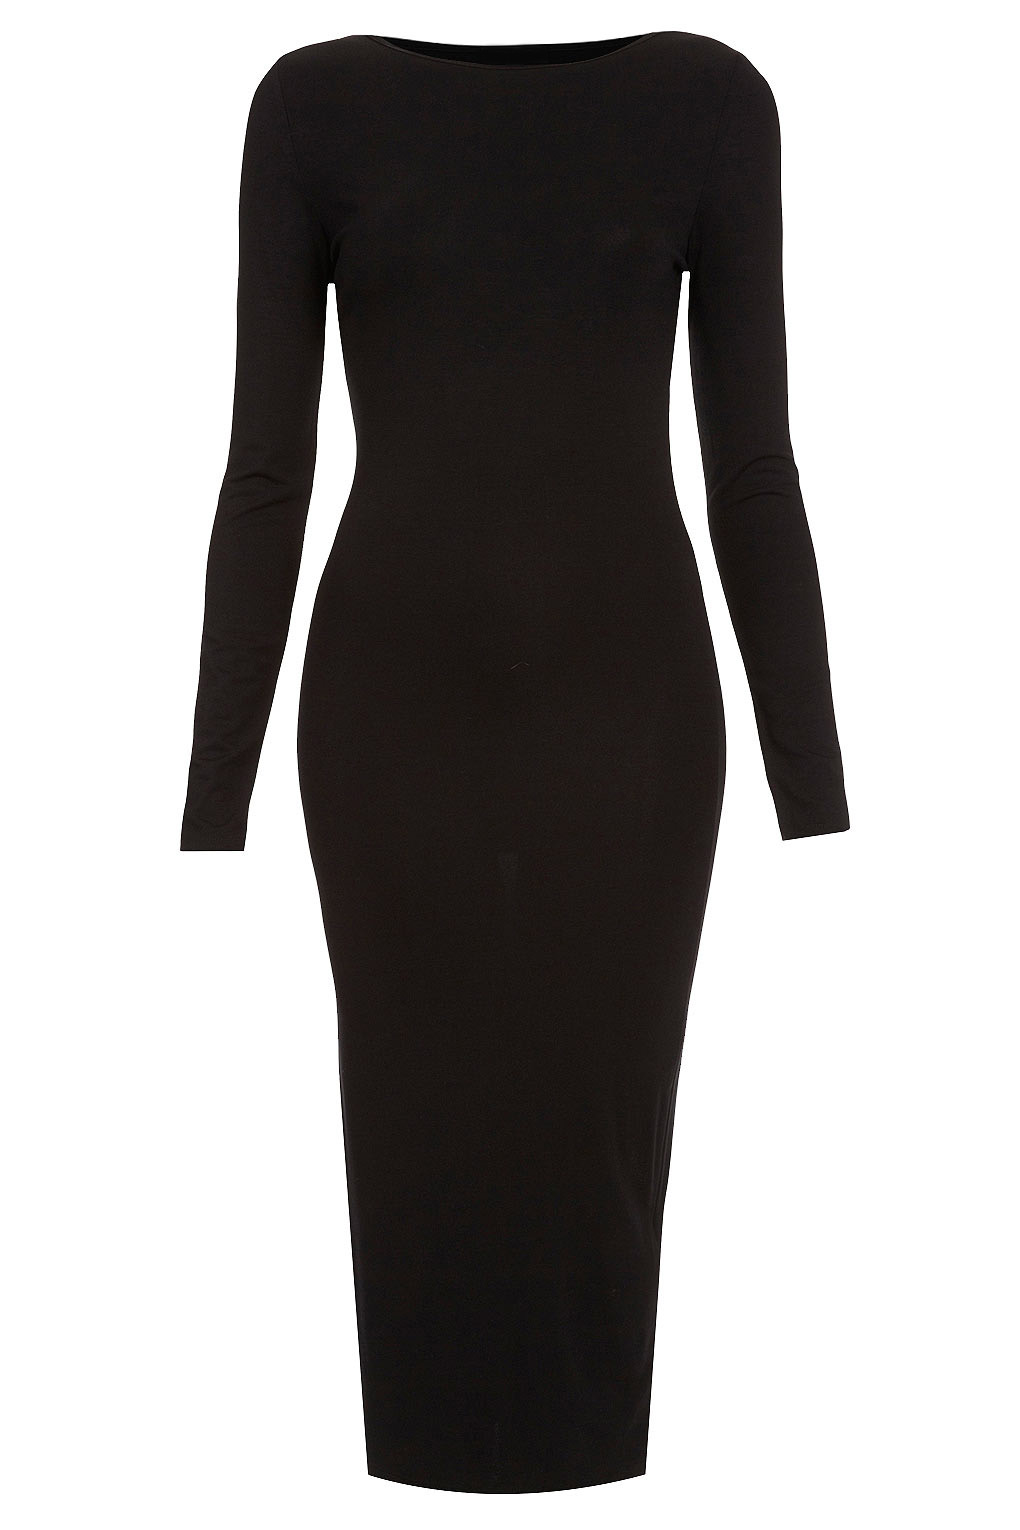 26187b23d23a Long sleeve bodycon dress (Black) – Soha MT Collection